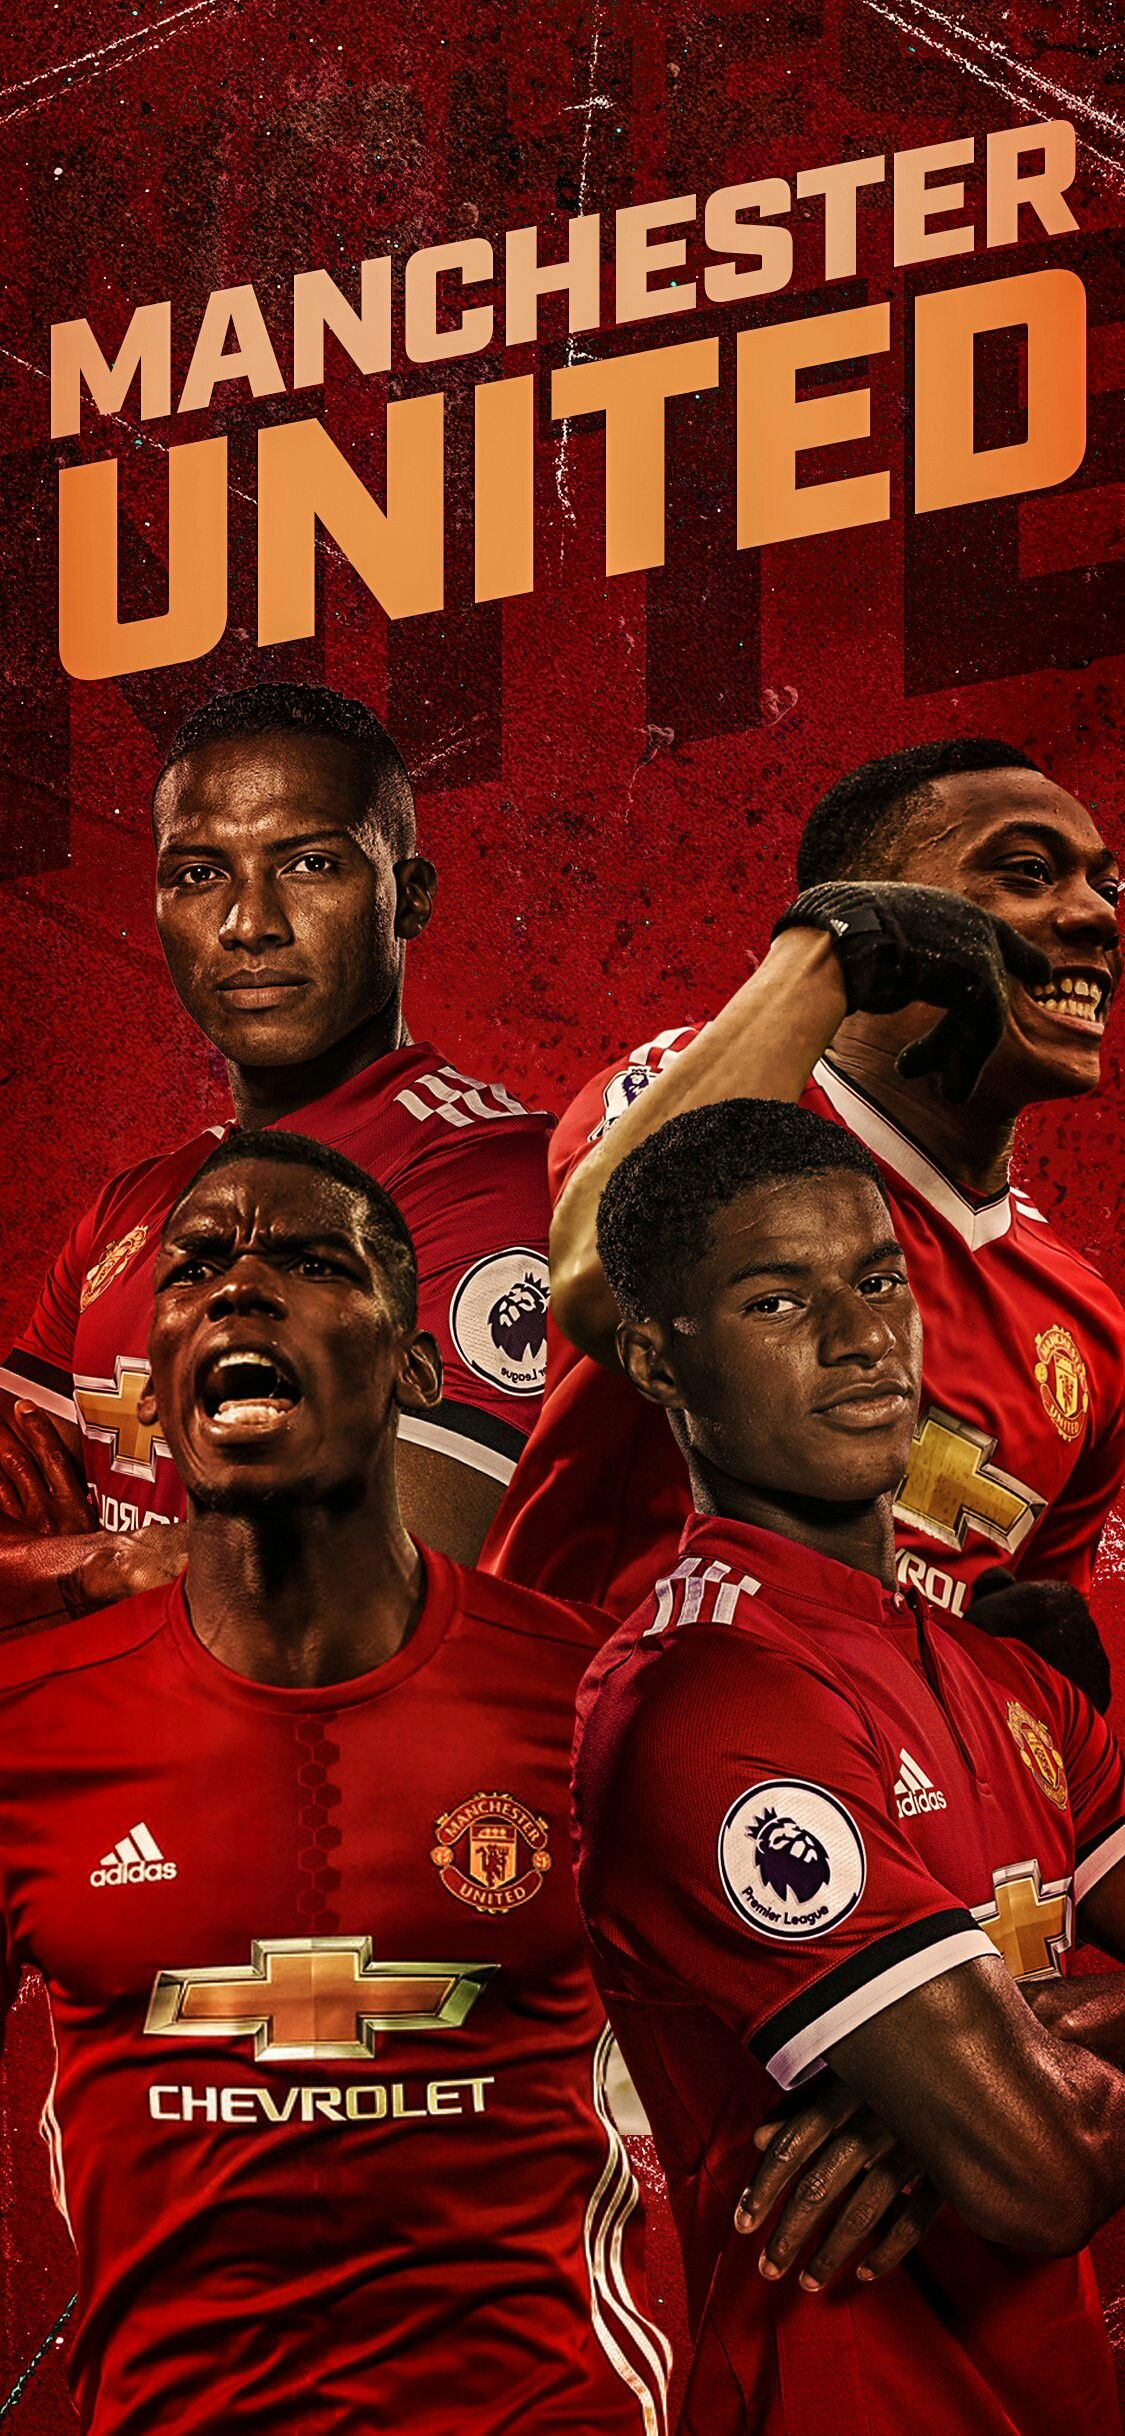 Get Awesome Manchester United Wallpapers Players #TheRedDevils